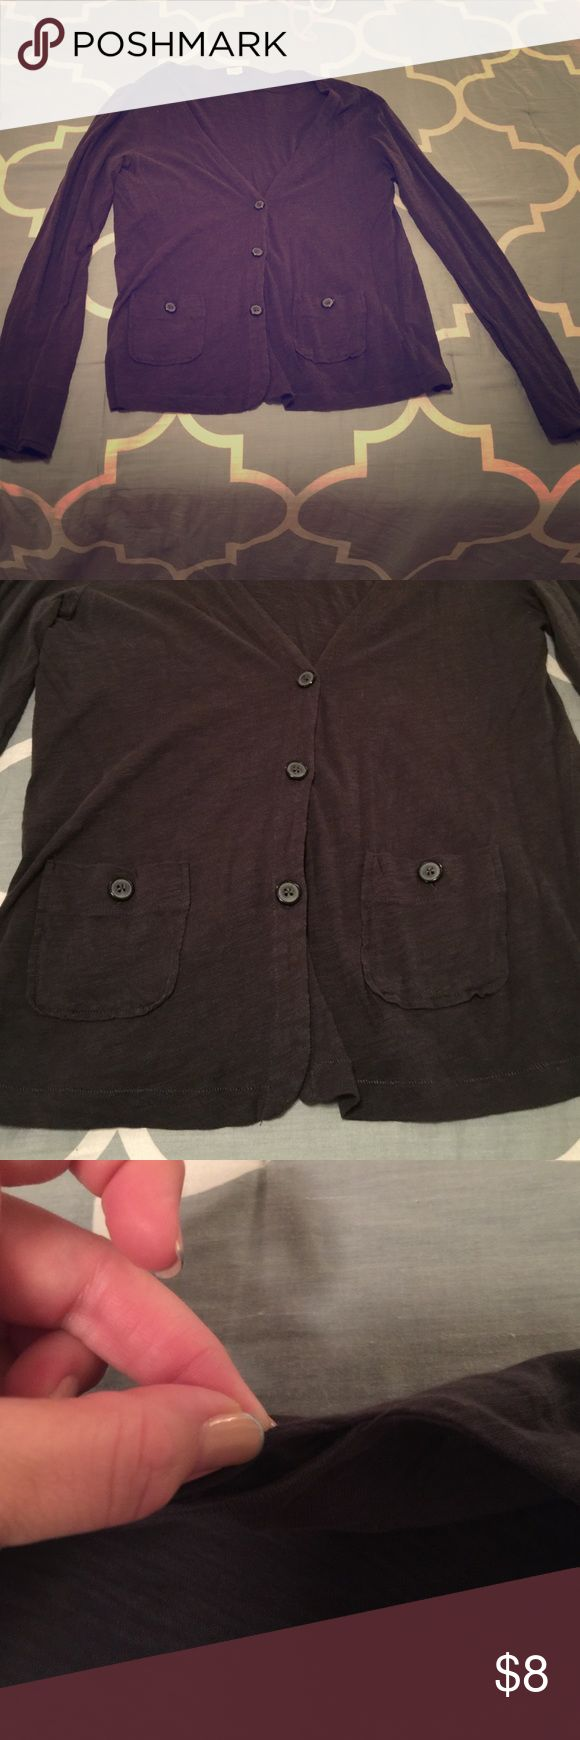 Dark blue sweater Dark blue button up sweater with pockets. Third picture shows where shirt needs to be sewn together it is at the top of the shirt on the collar cannot see when being worn. Otherwise great condition! J. Crew Sweaters Cardigans